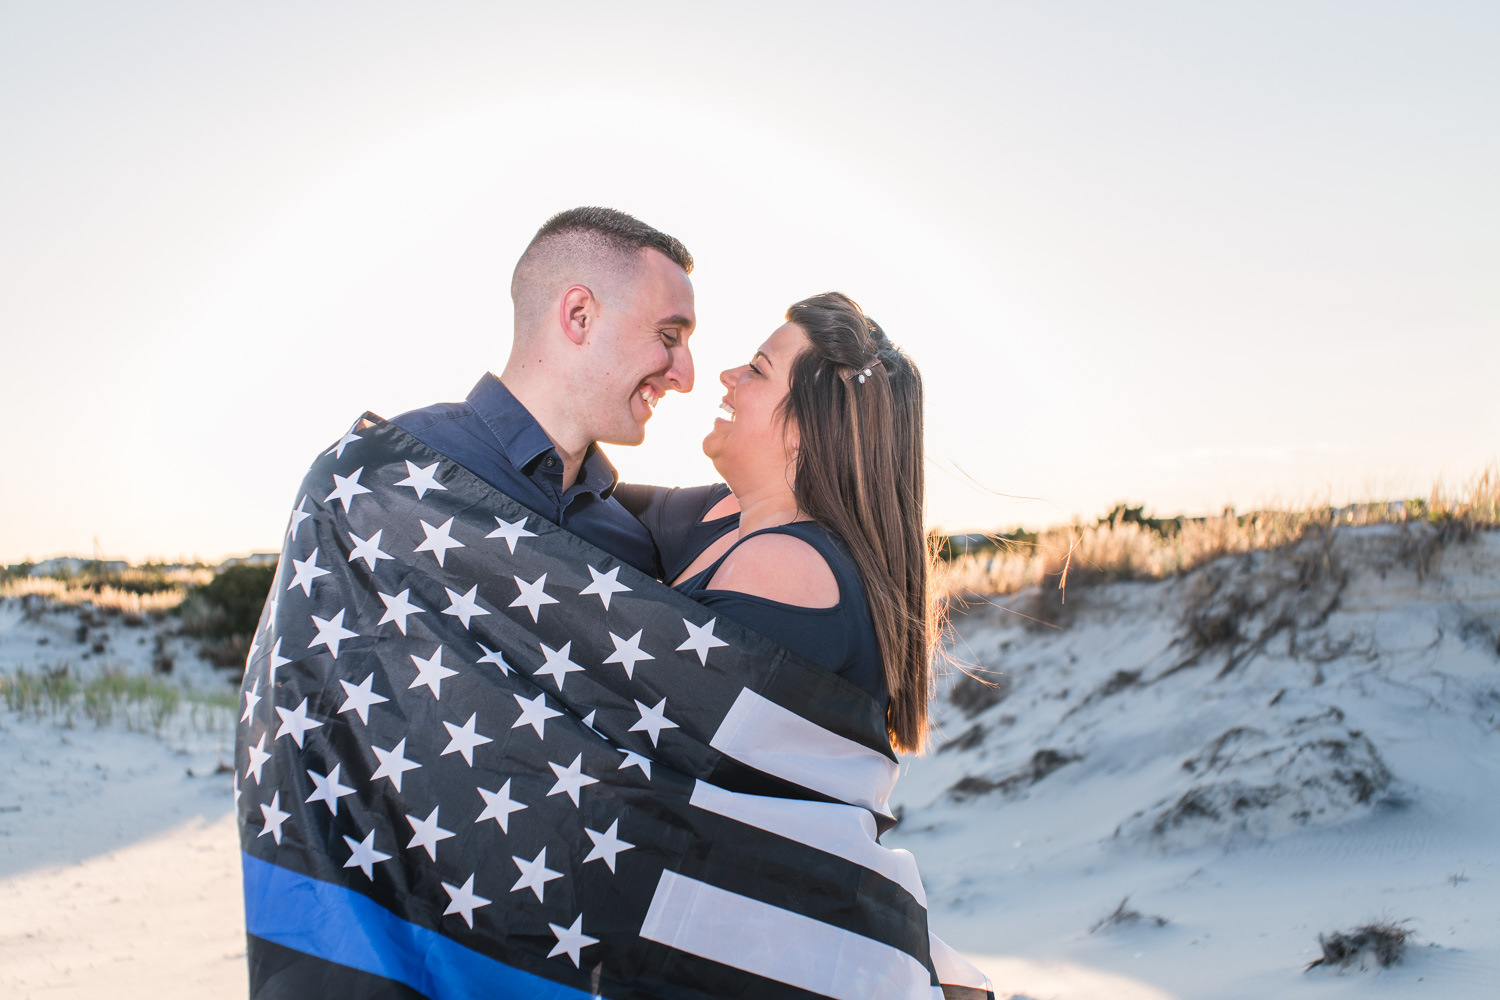 lbi-wedding-photographer-lbi-engagement-dan-beckie--7.jpg